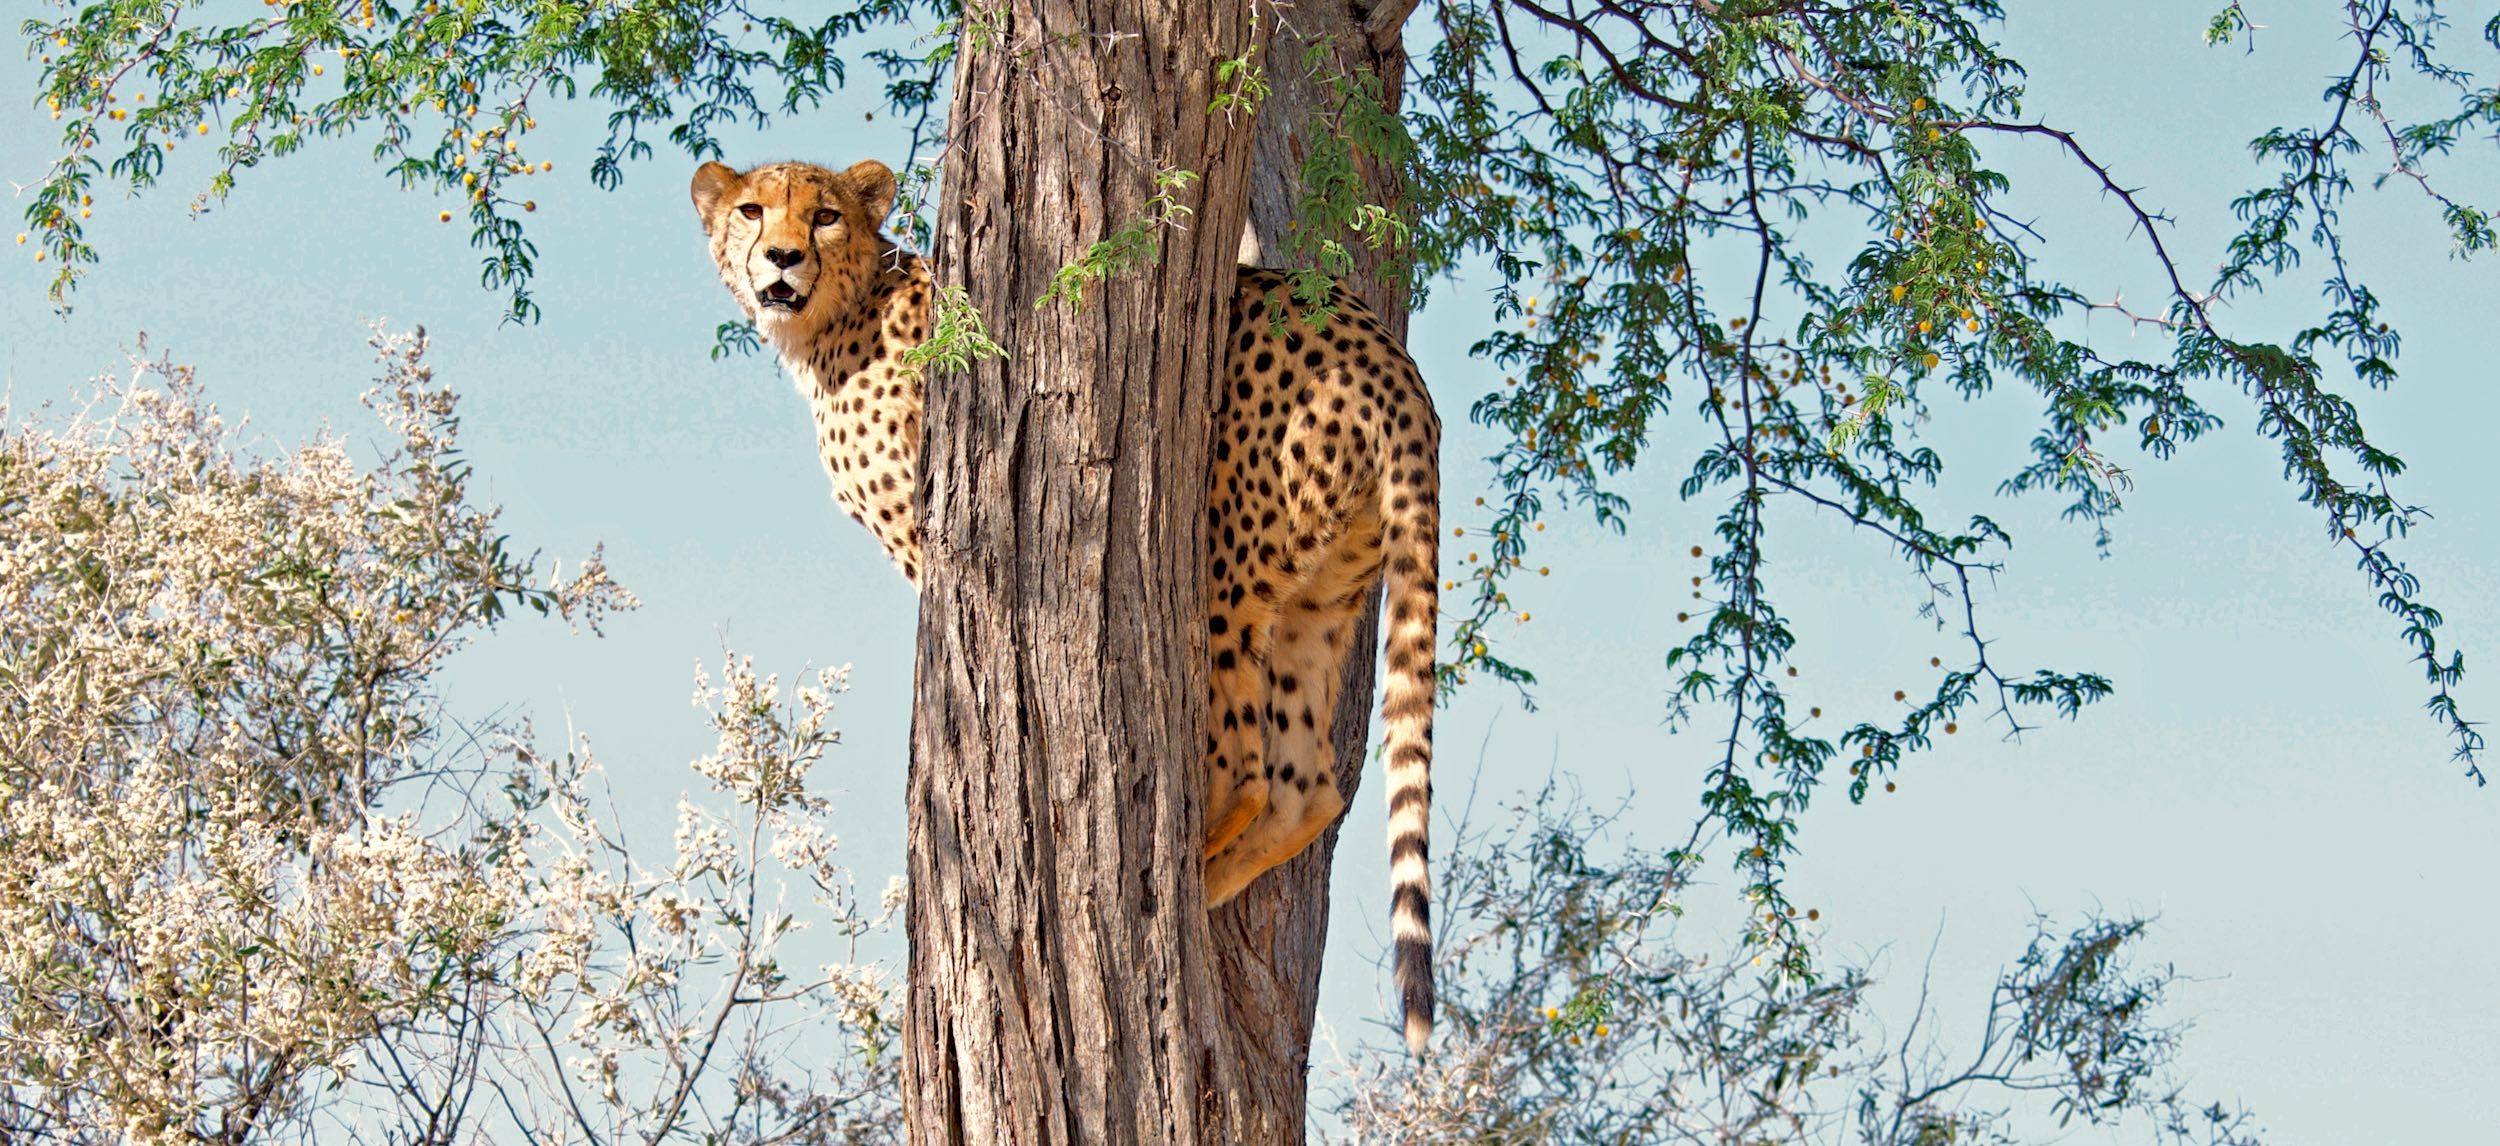 A cheetah looks down from the tree she is standing in.